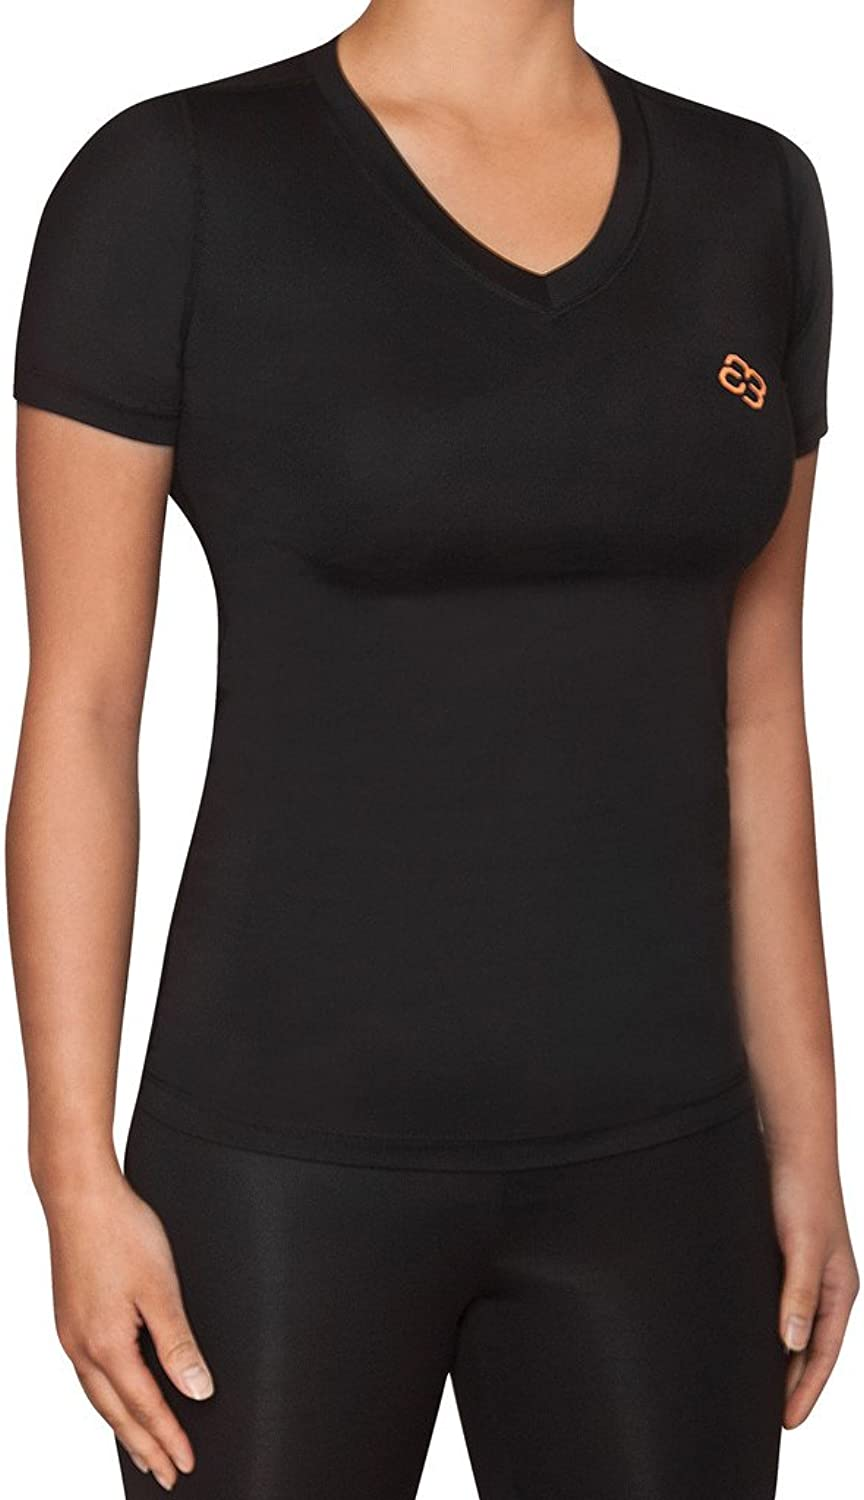 Copper 88 Ladies Compression Short Sleeve Shirt with 88% Copper Fiber Embedded Nylon to Aid in Recovery & Pain Relief  (XLarge)